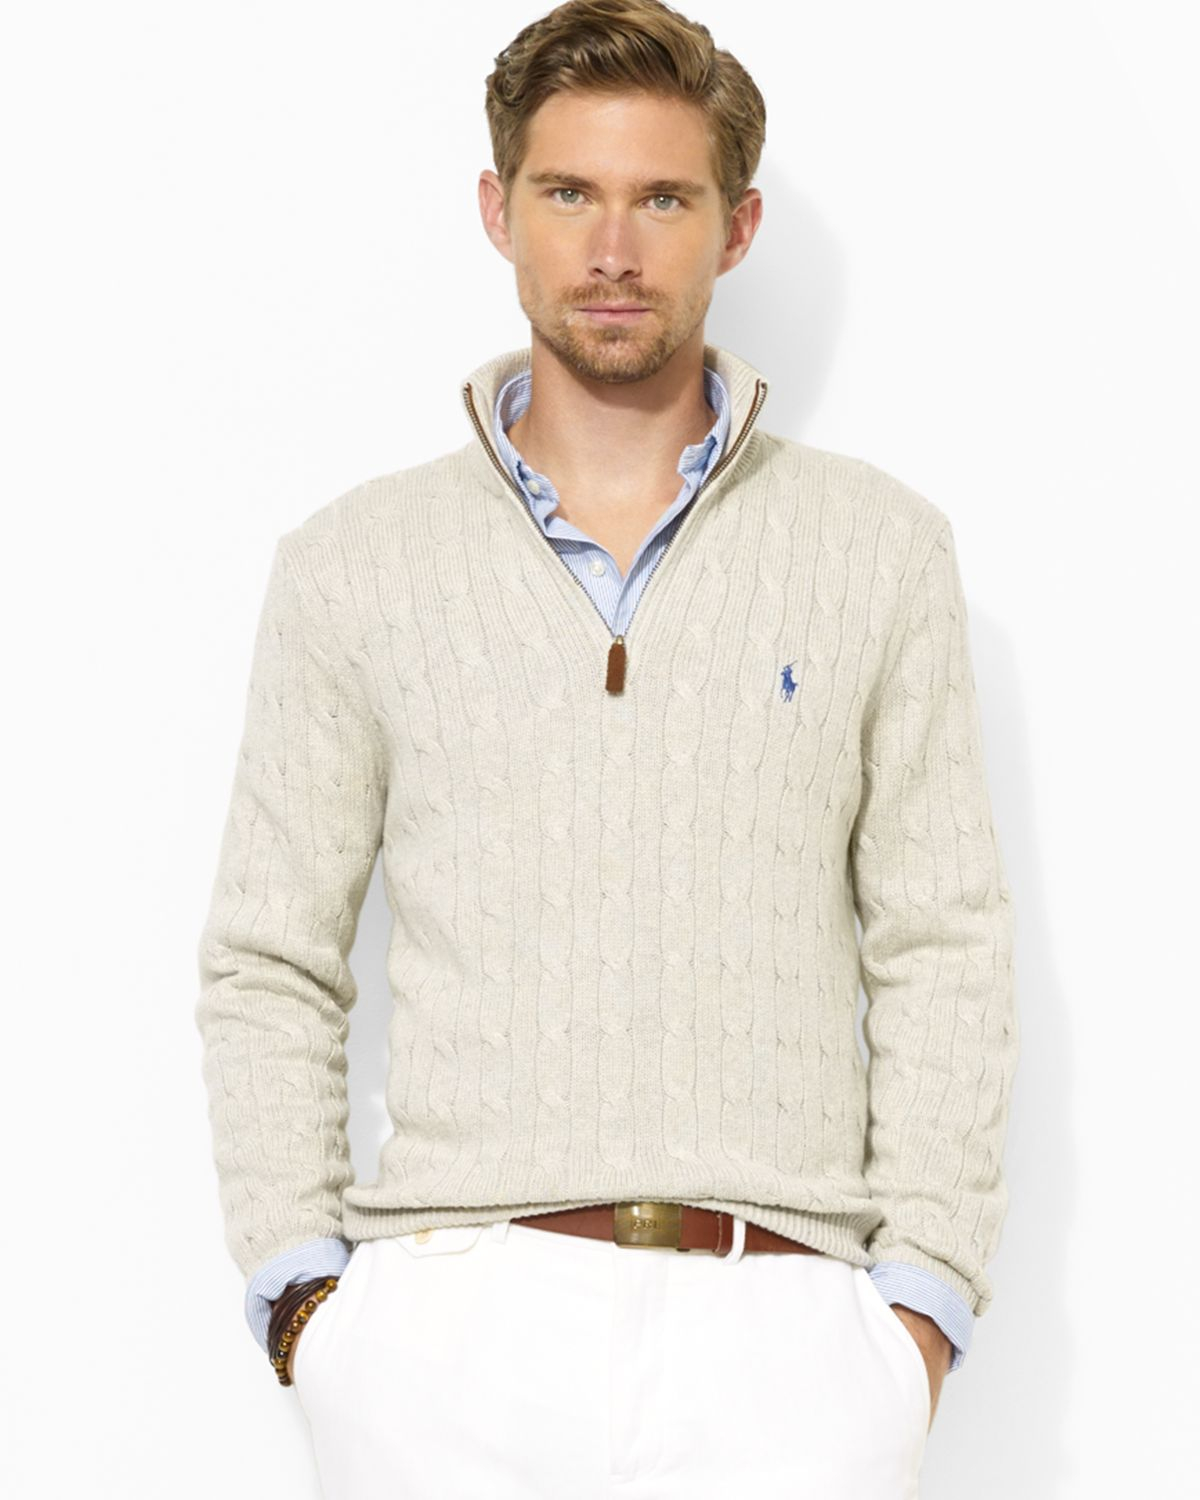 ralph-lauren-gray-polo-half-zip-cable-knit-tussah-silk-sweater -product-1-16506163-0-618316020-normal.jpeg